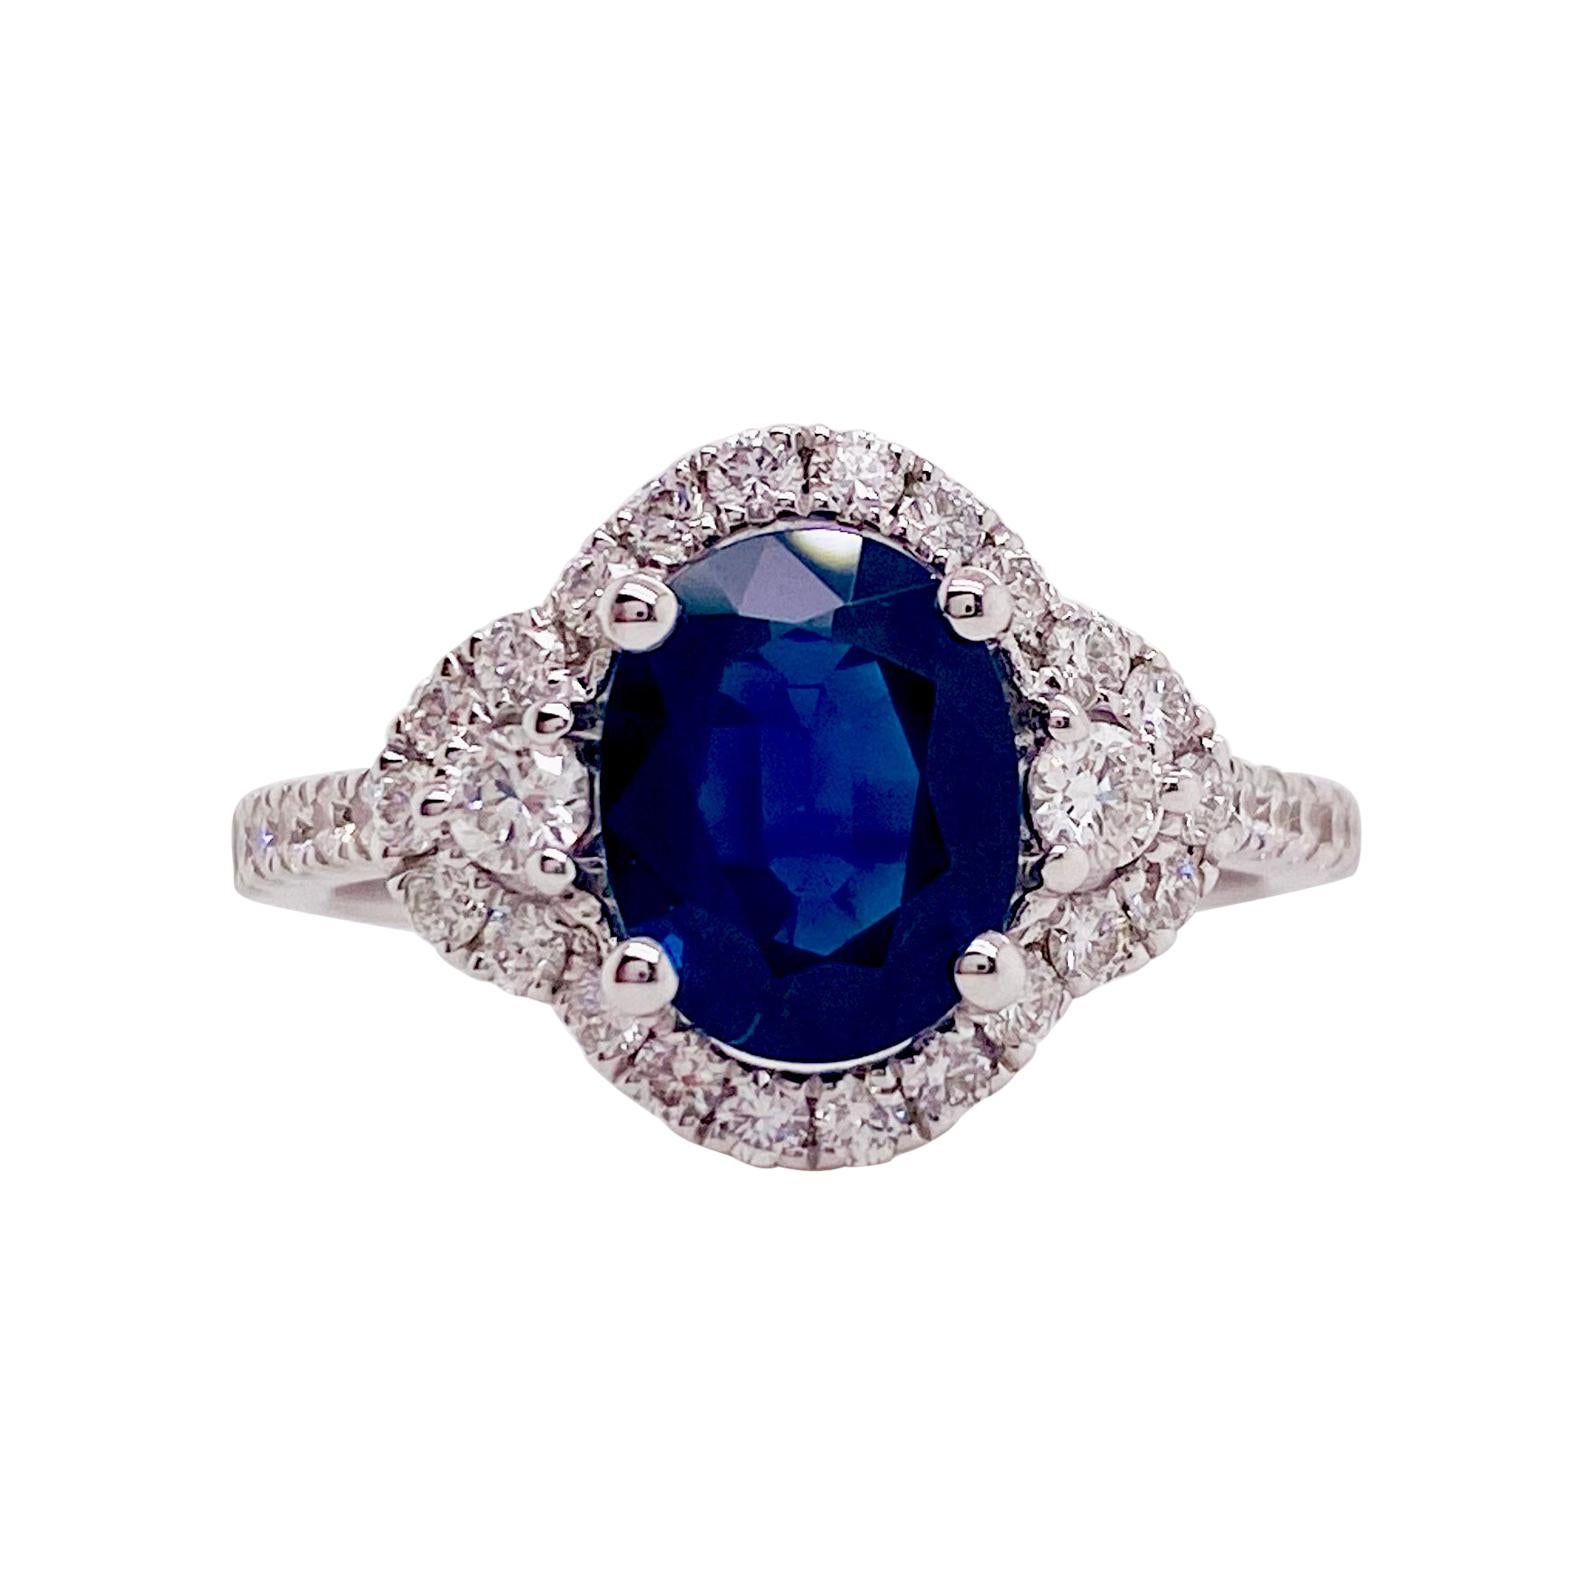 Sapphire Oval Diamond Engagement Ring, 2.65 Carats Sapphire and Diamond Ring